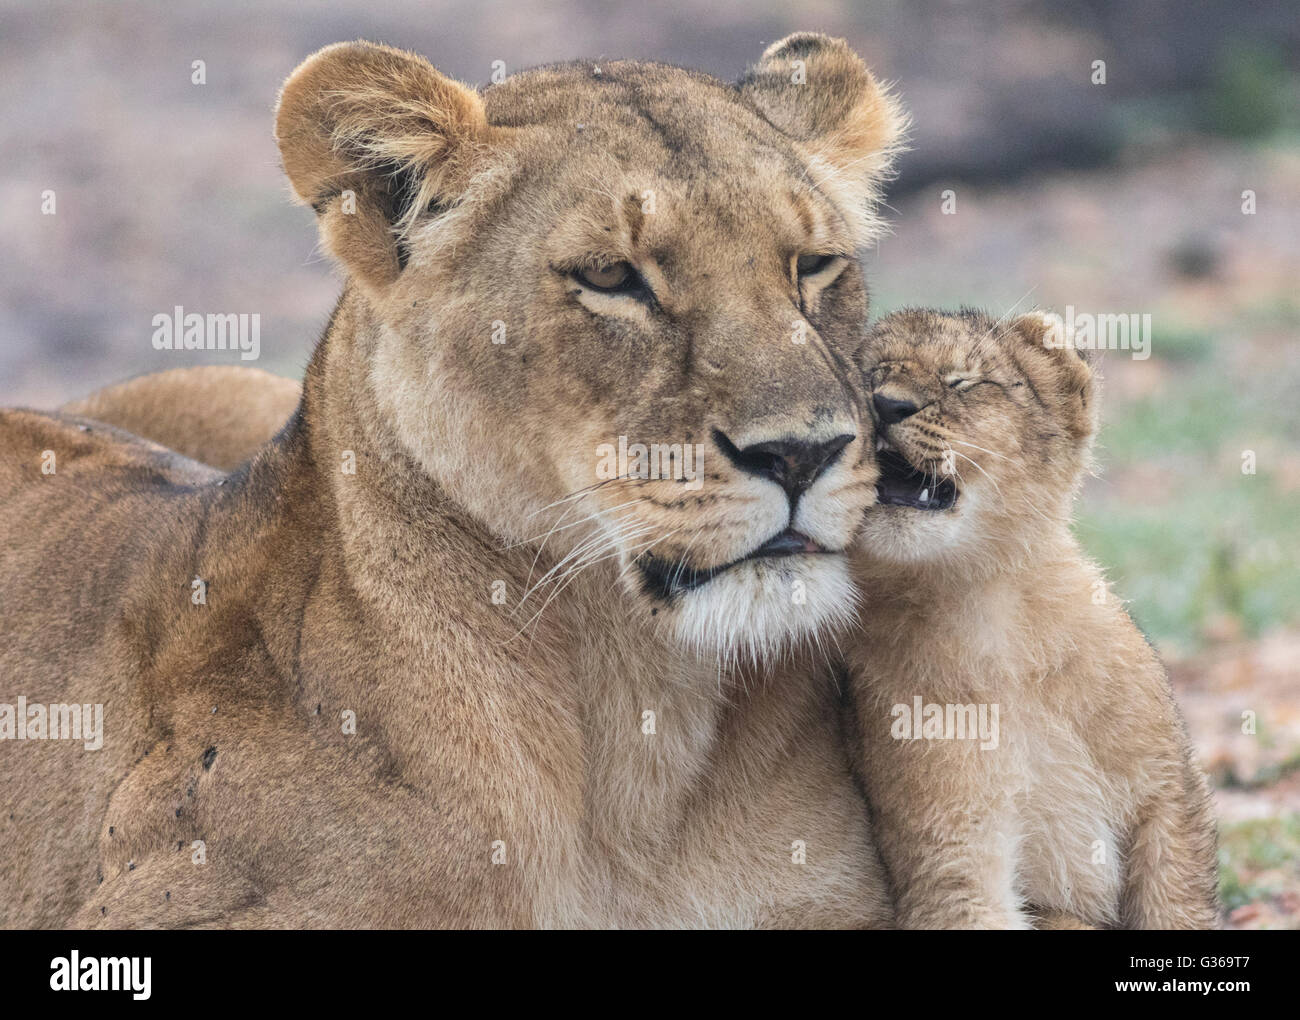 Lioness with cub fondling with each other, Masai Mara, Kenya, Africa Stock Photo